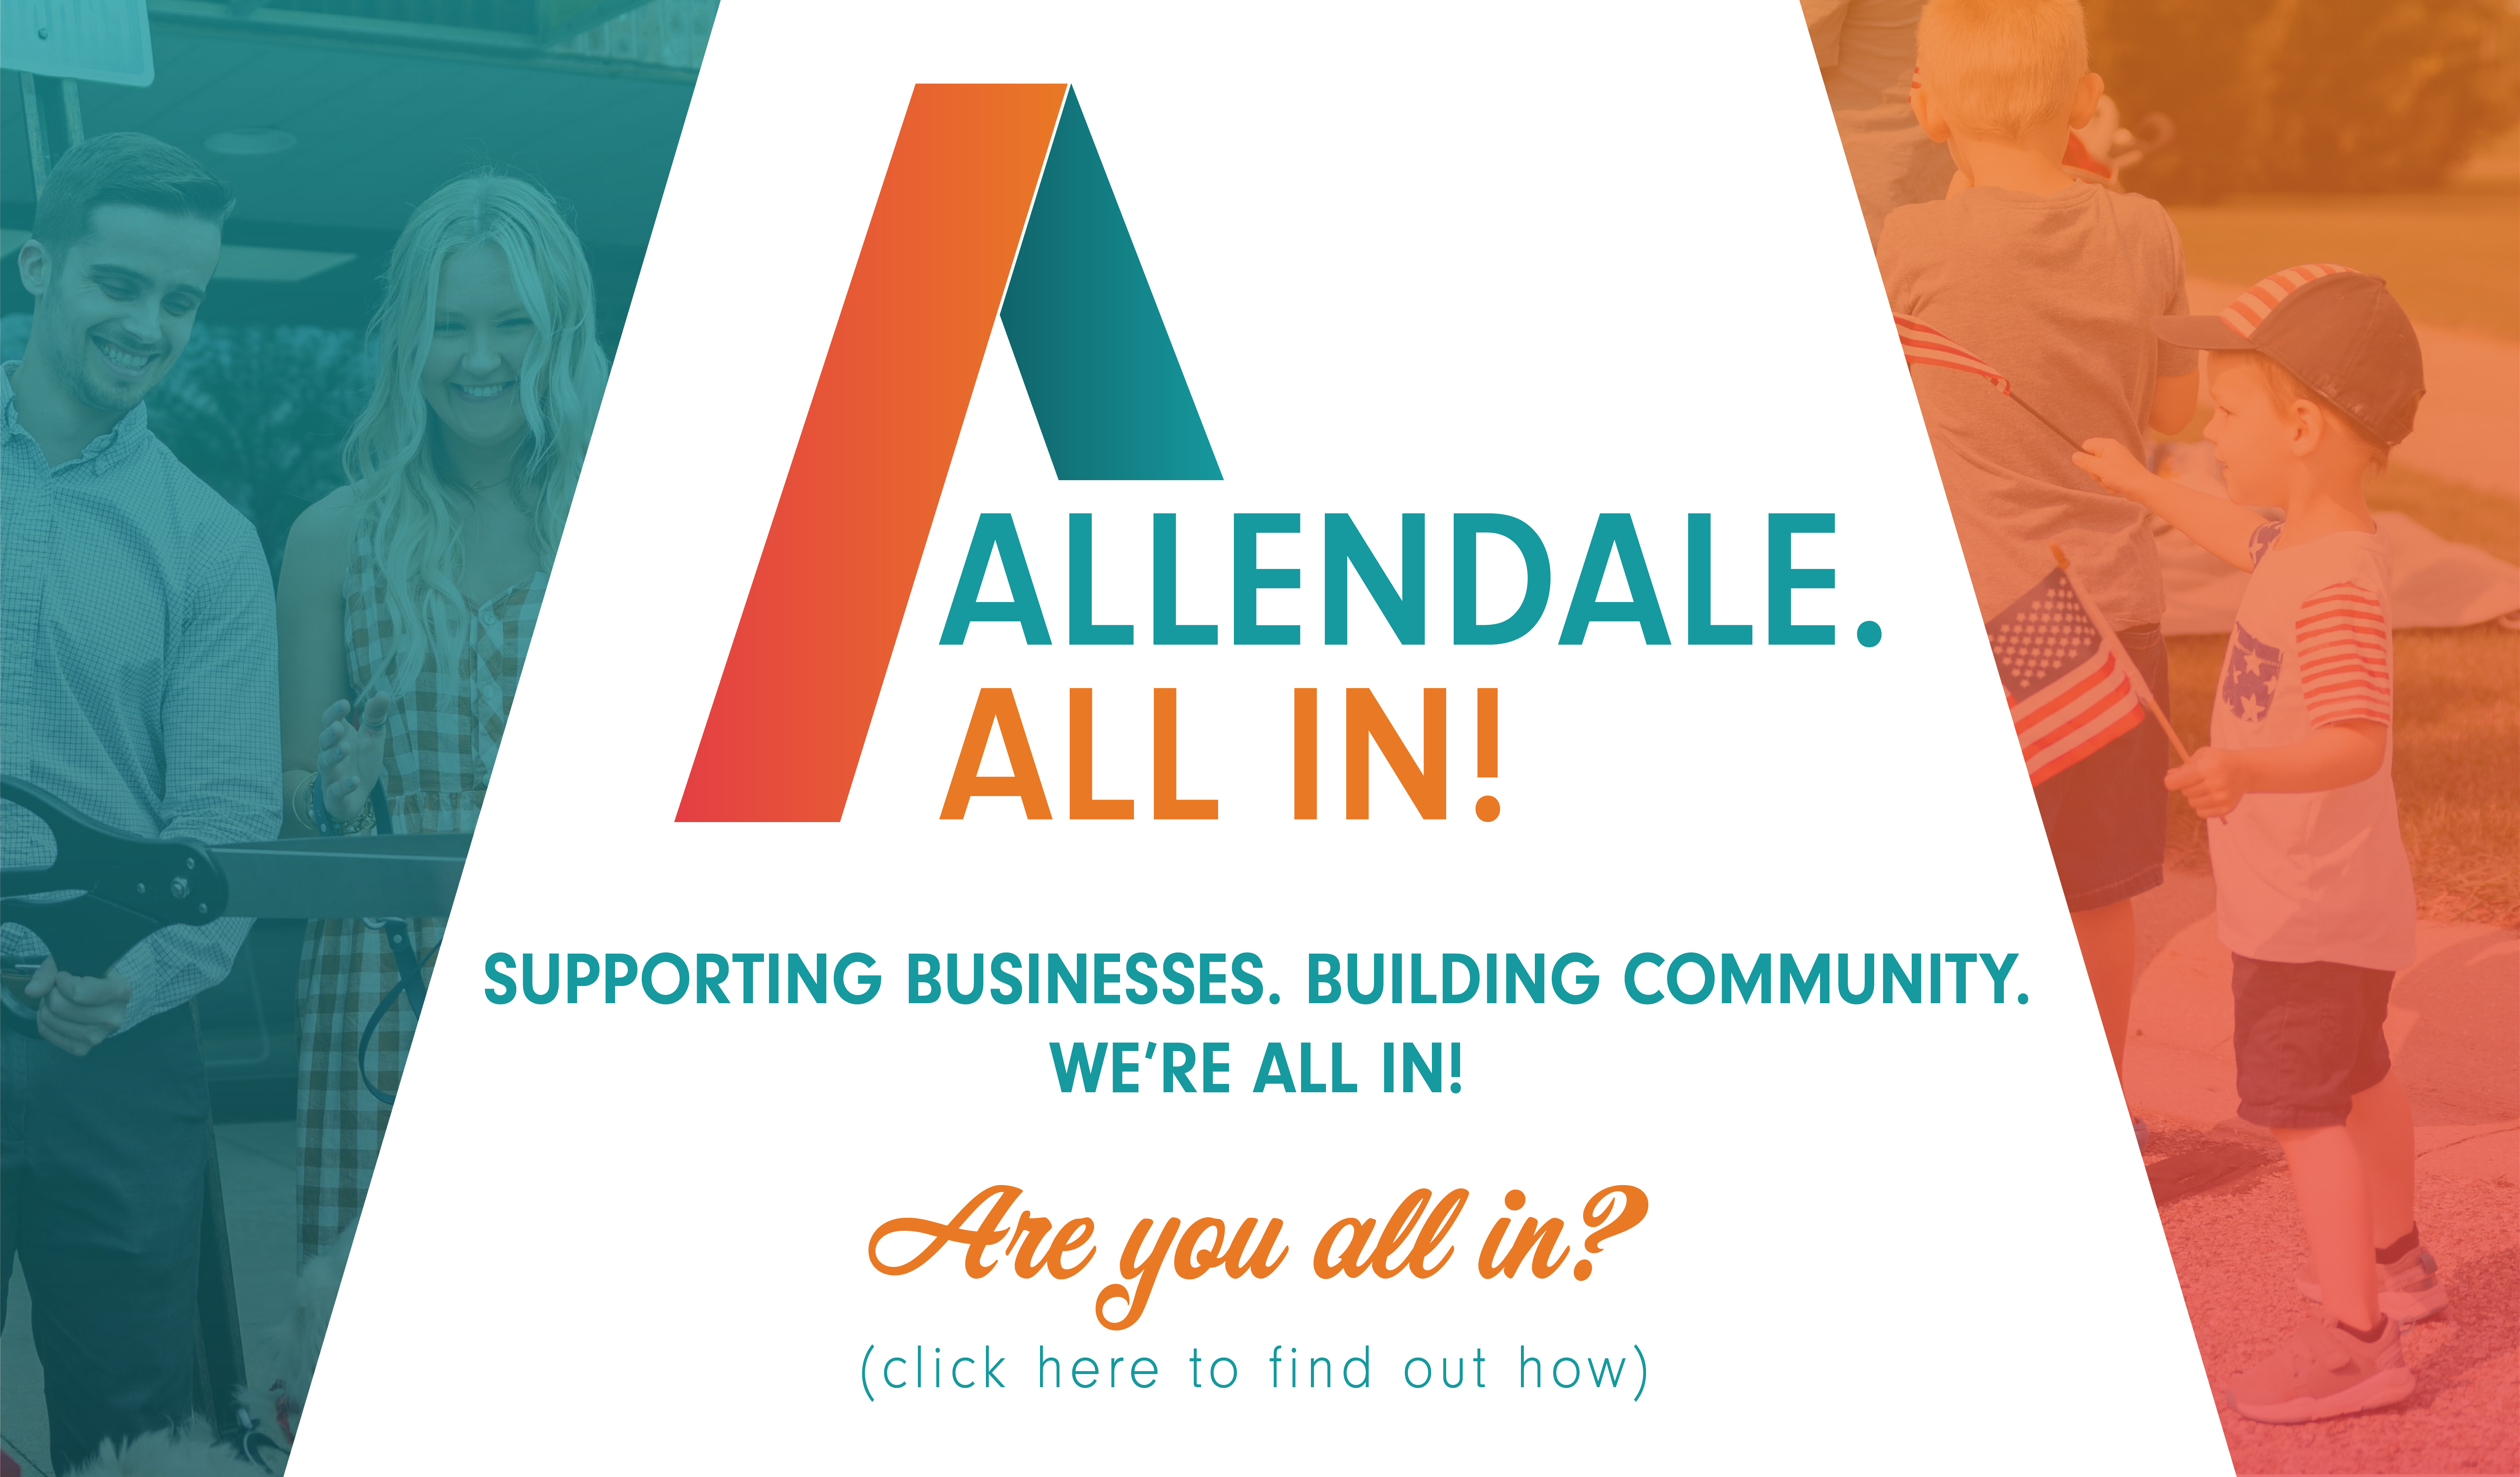 Allendale All In